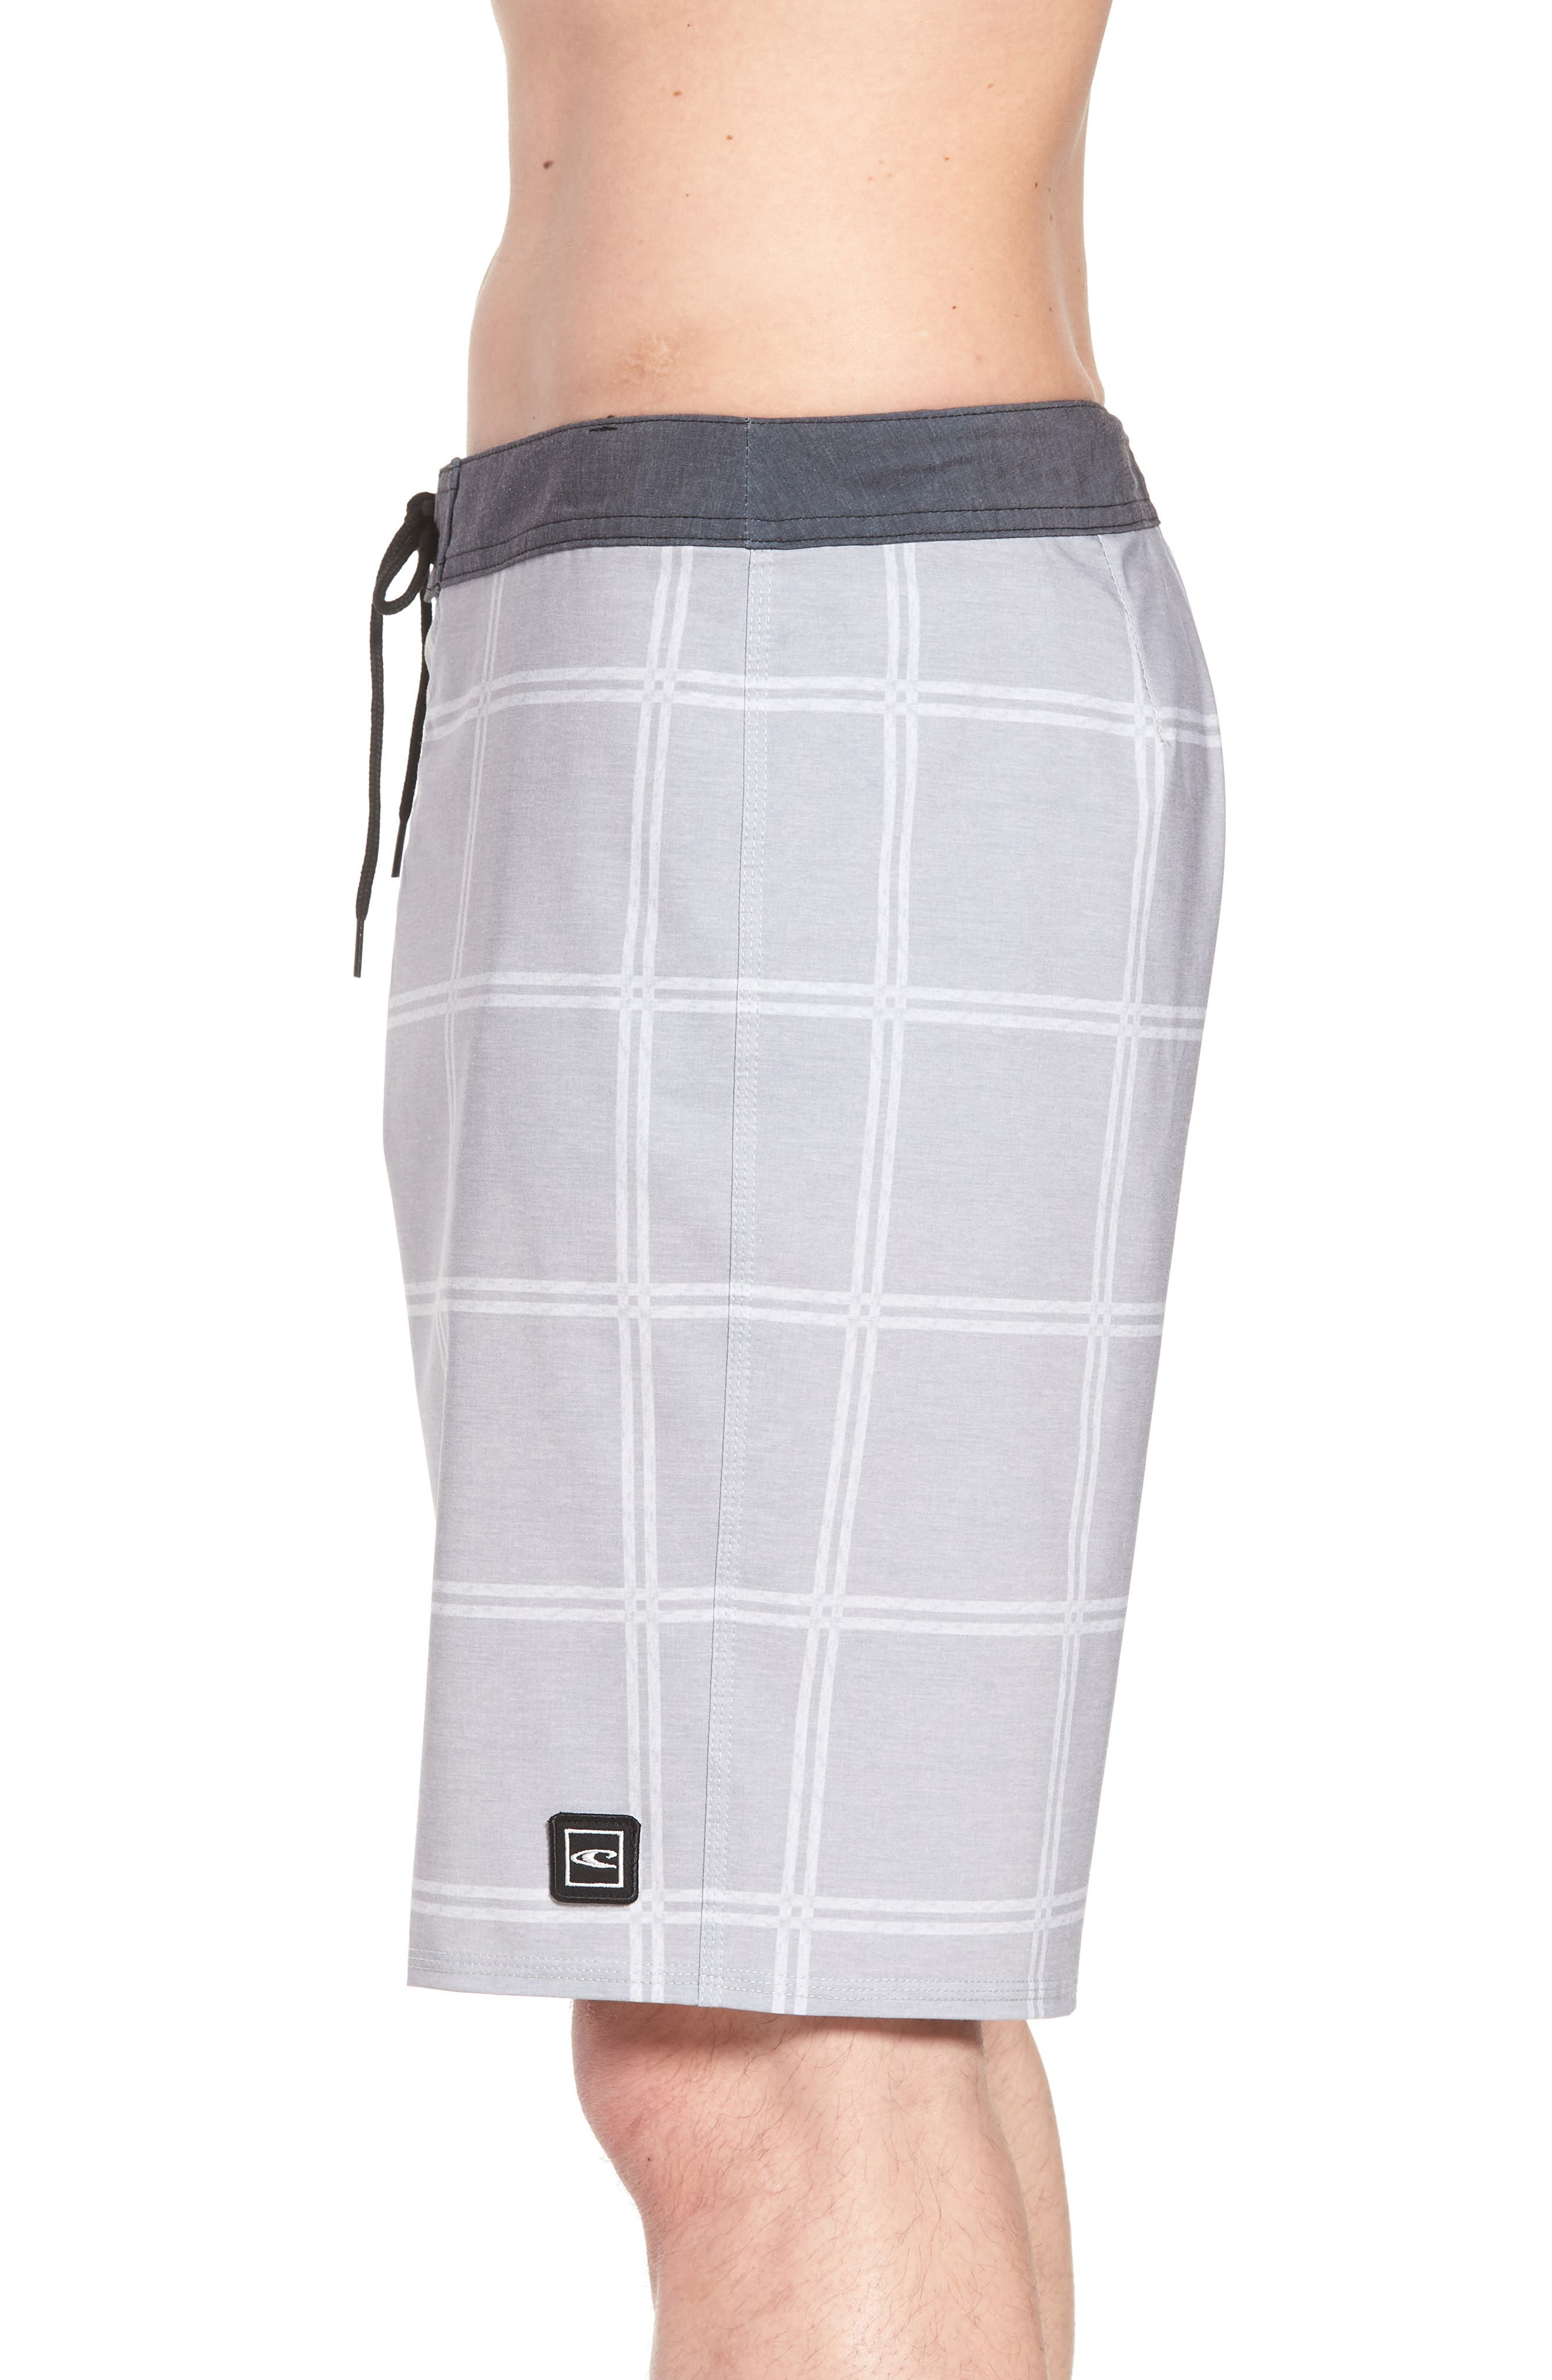 Head High Board Shorts,                             Alternate thumbnail 3, color,                             Light Grey